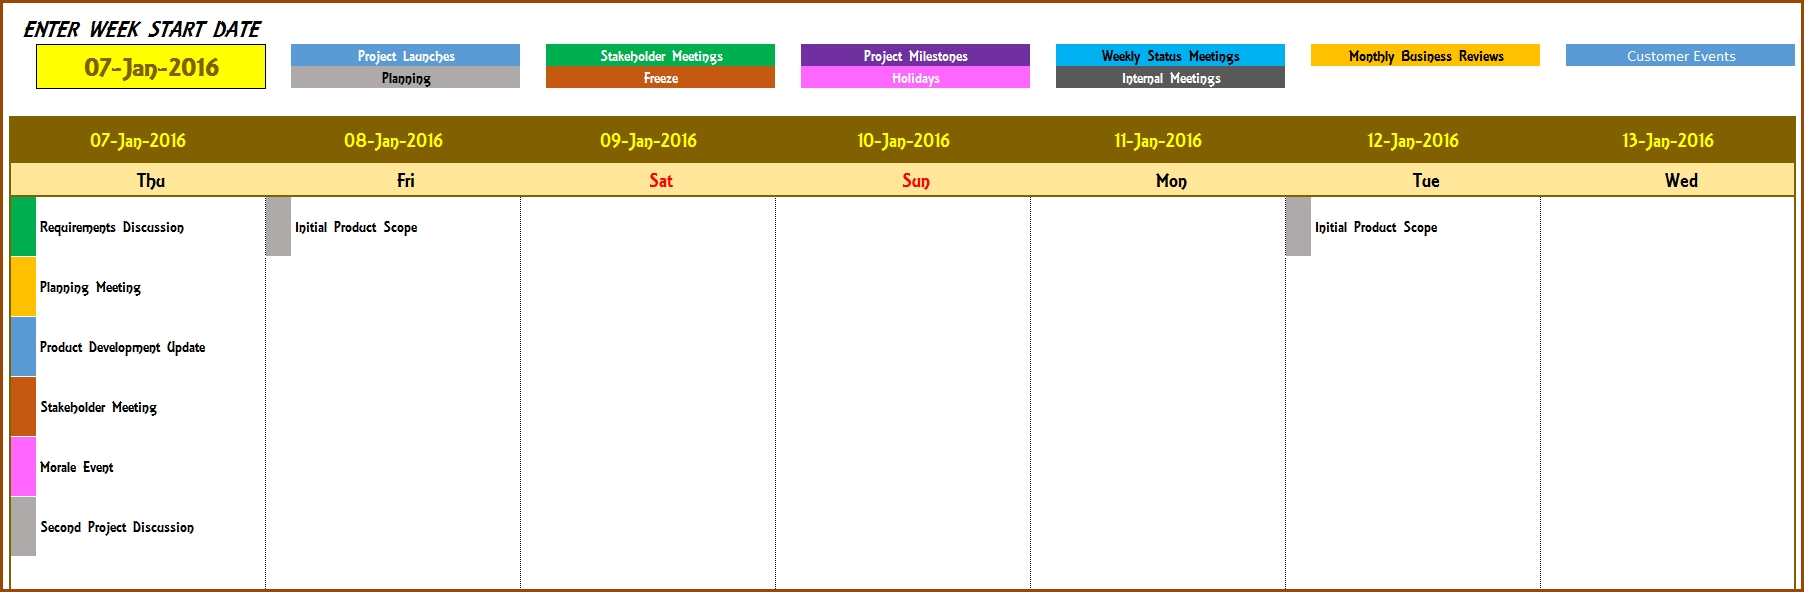 event calendar template 2018  2018 Yearly Calendar Excel Template erdferdf